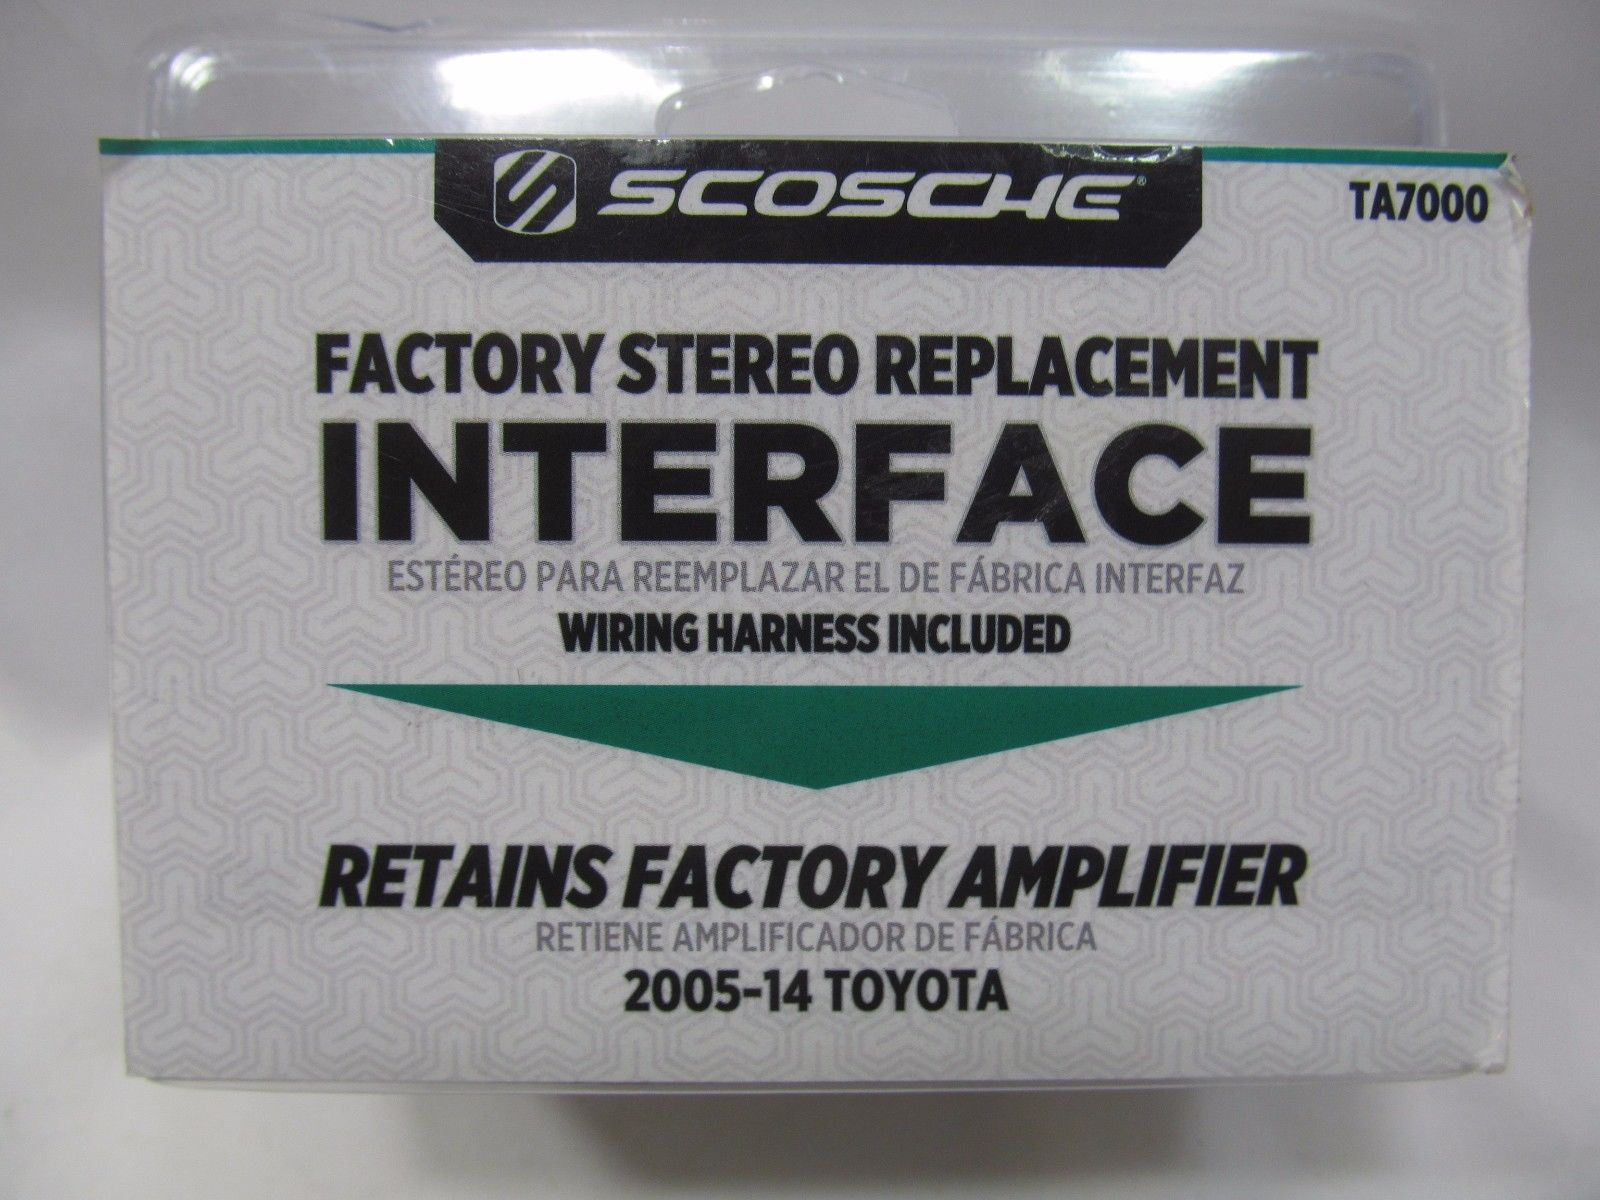 Scosche Factory Stereo Replacement Interface and 49 similar items